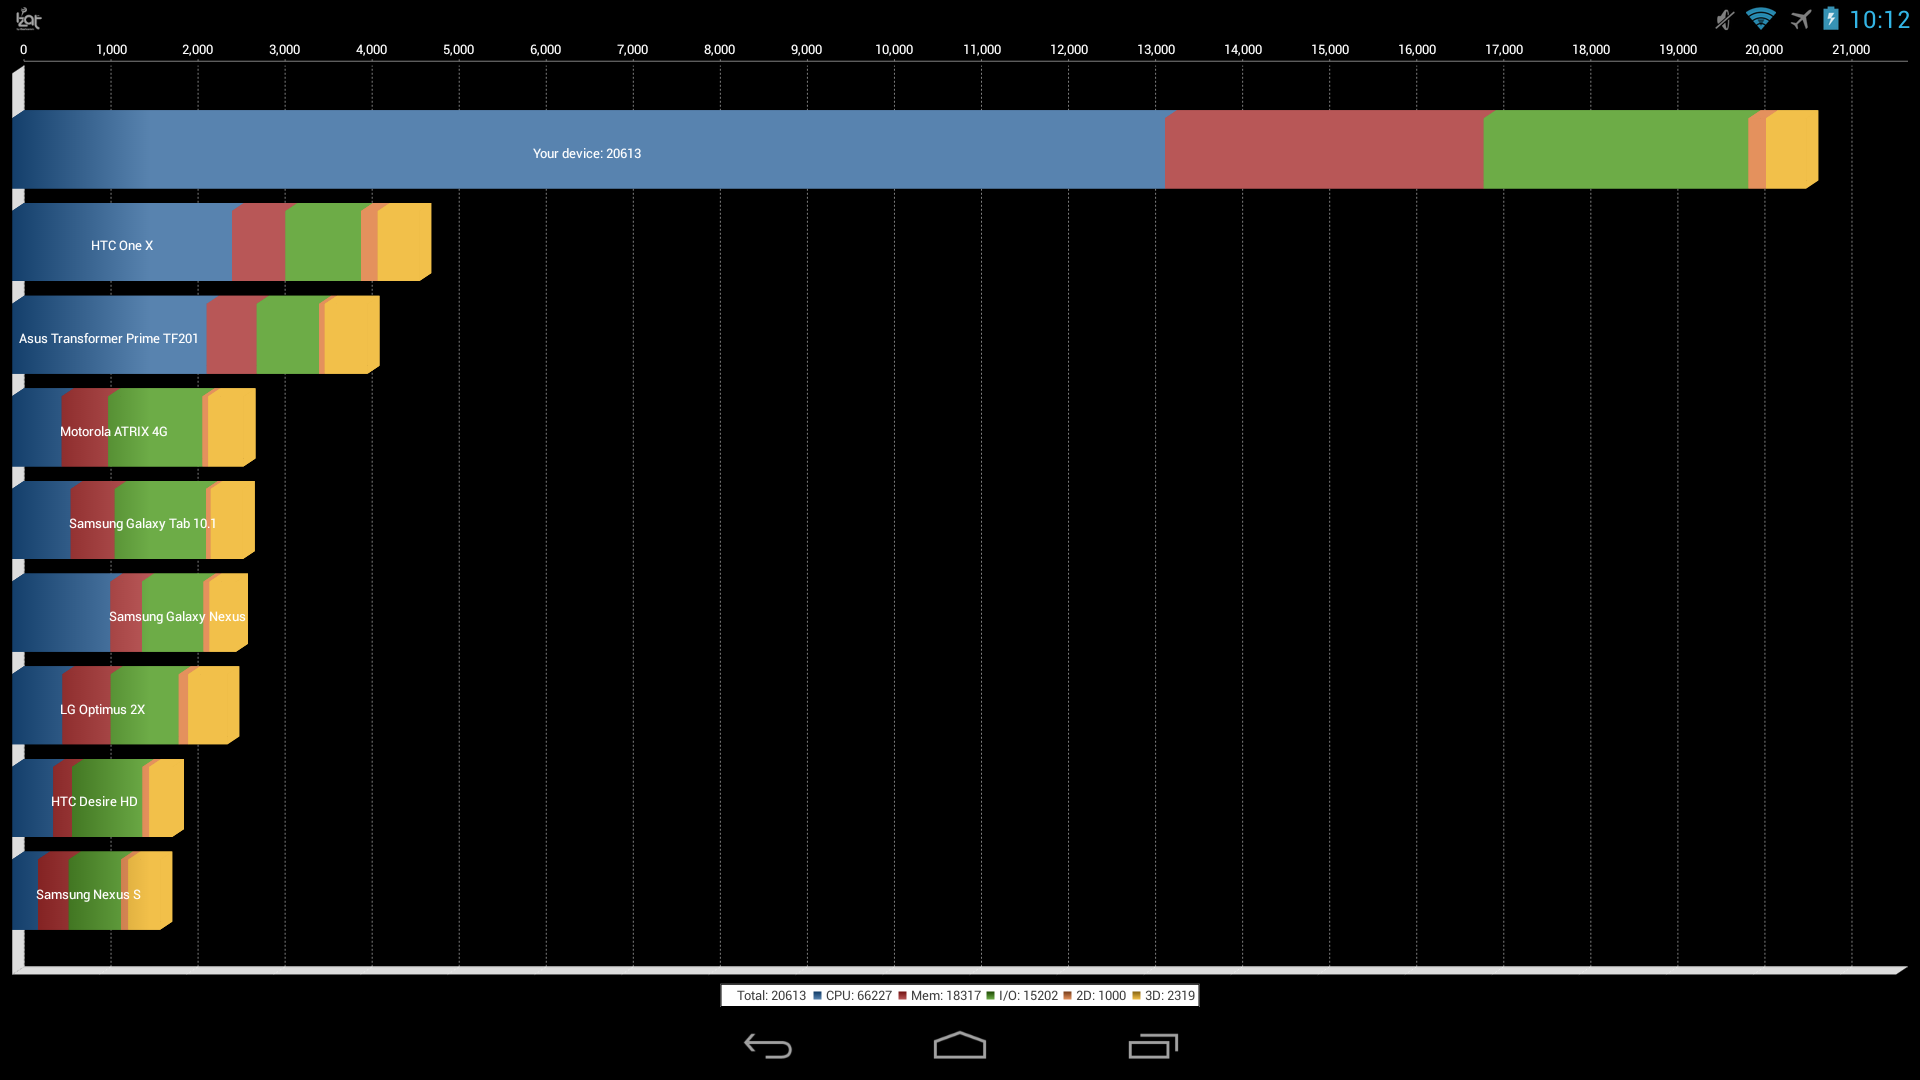 Quadrant 2.1.1 benchmark for the Qualcomm SnapDragon 800